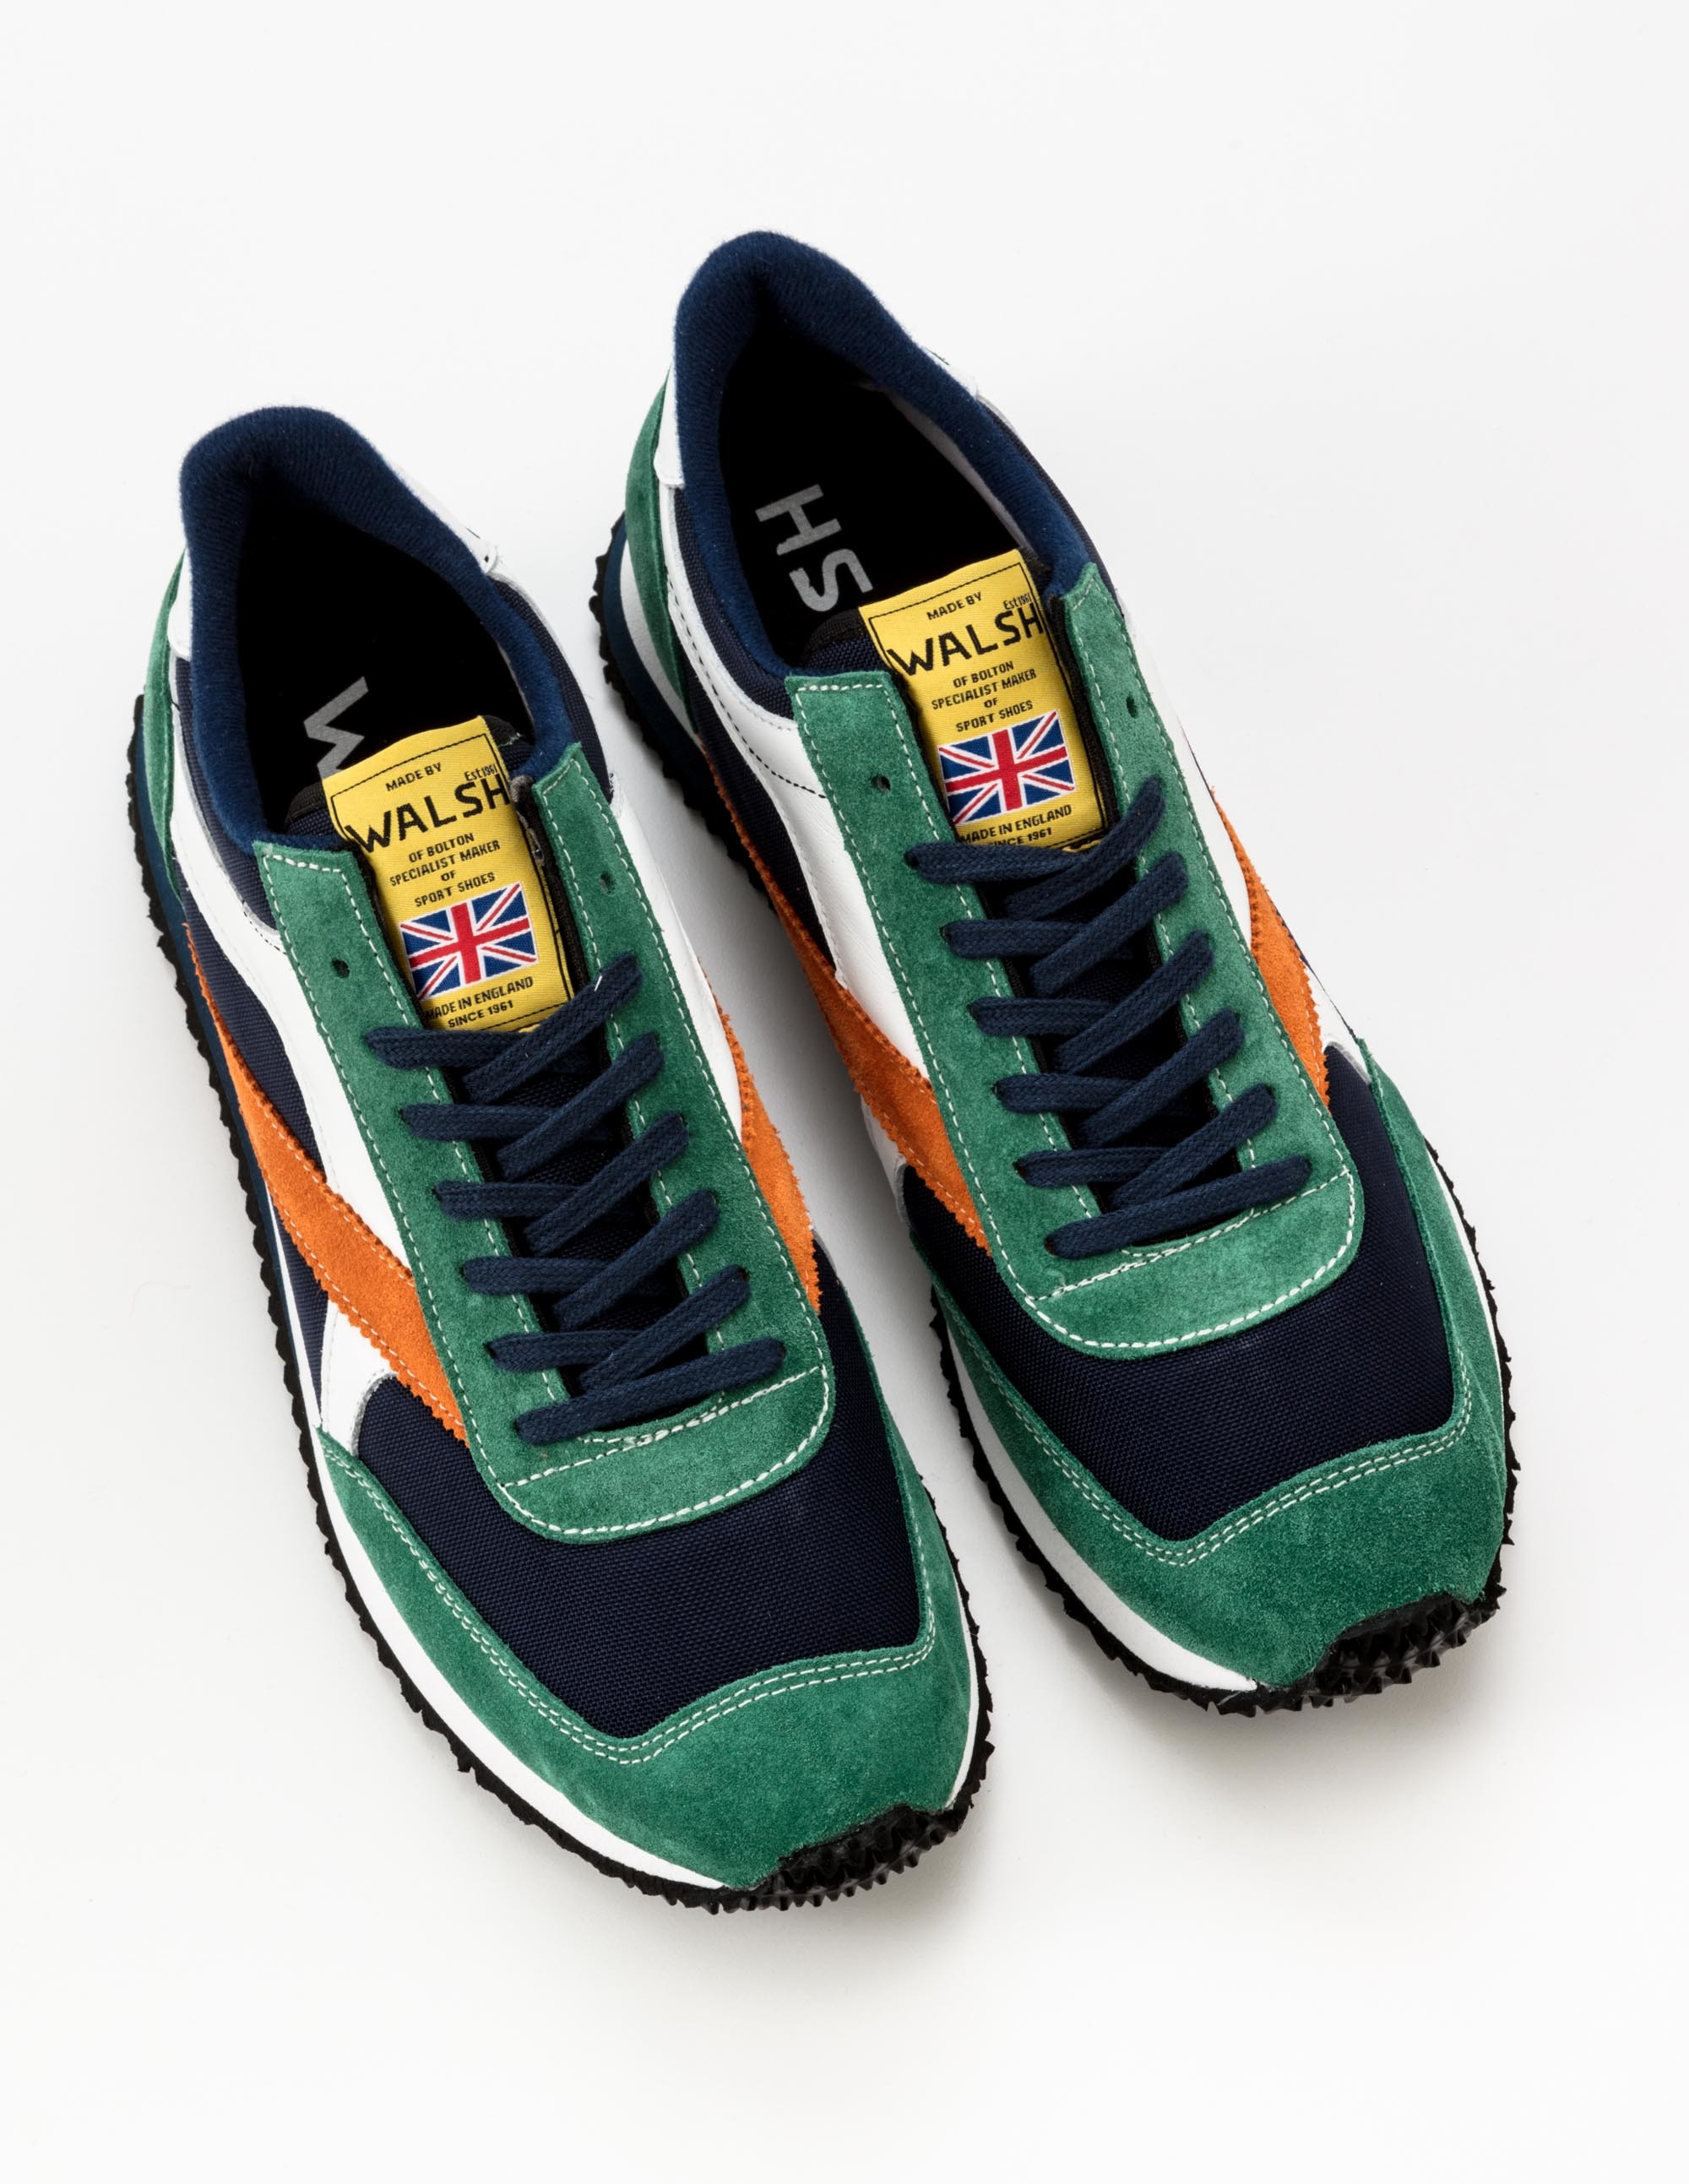 Walsh trainers – the last of the